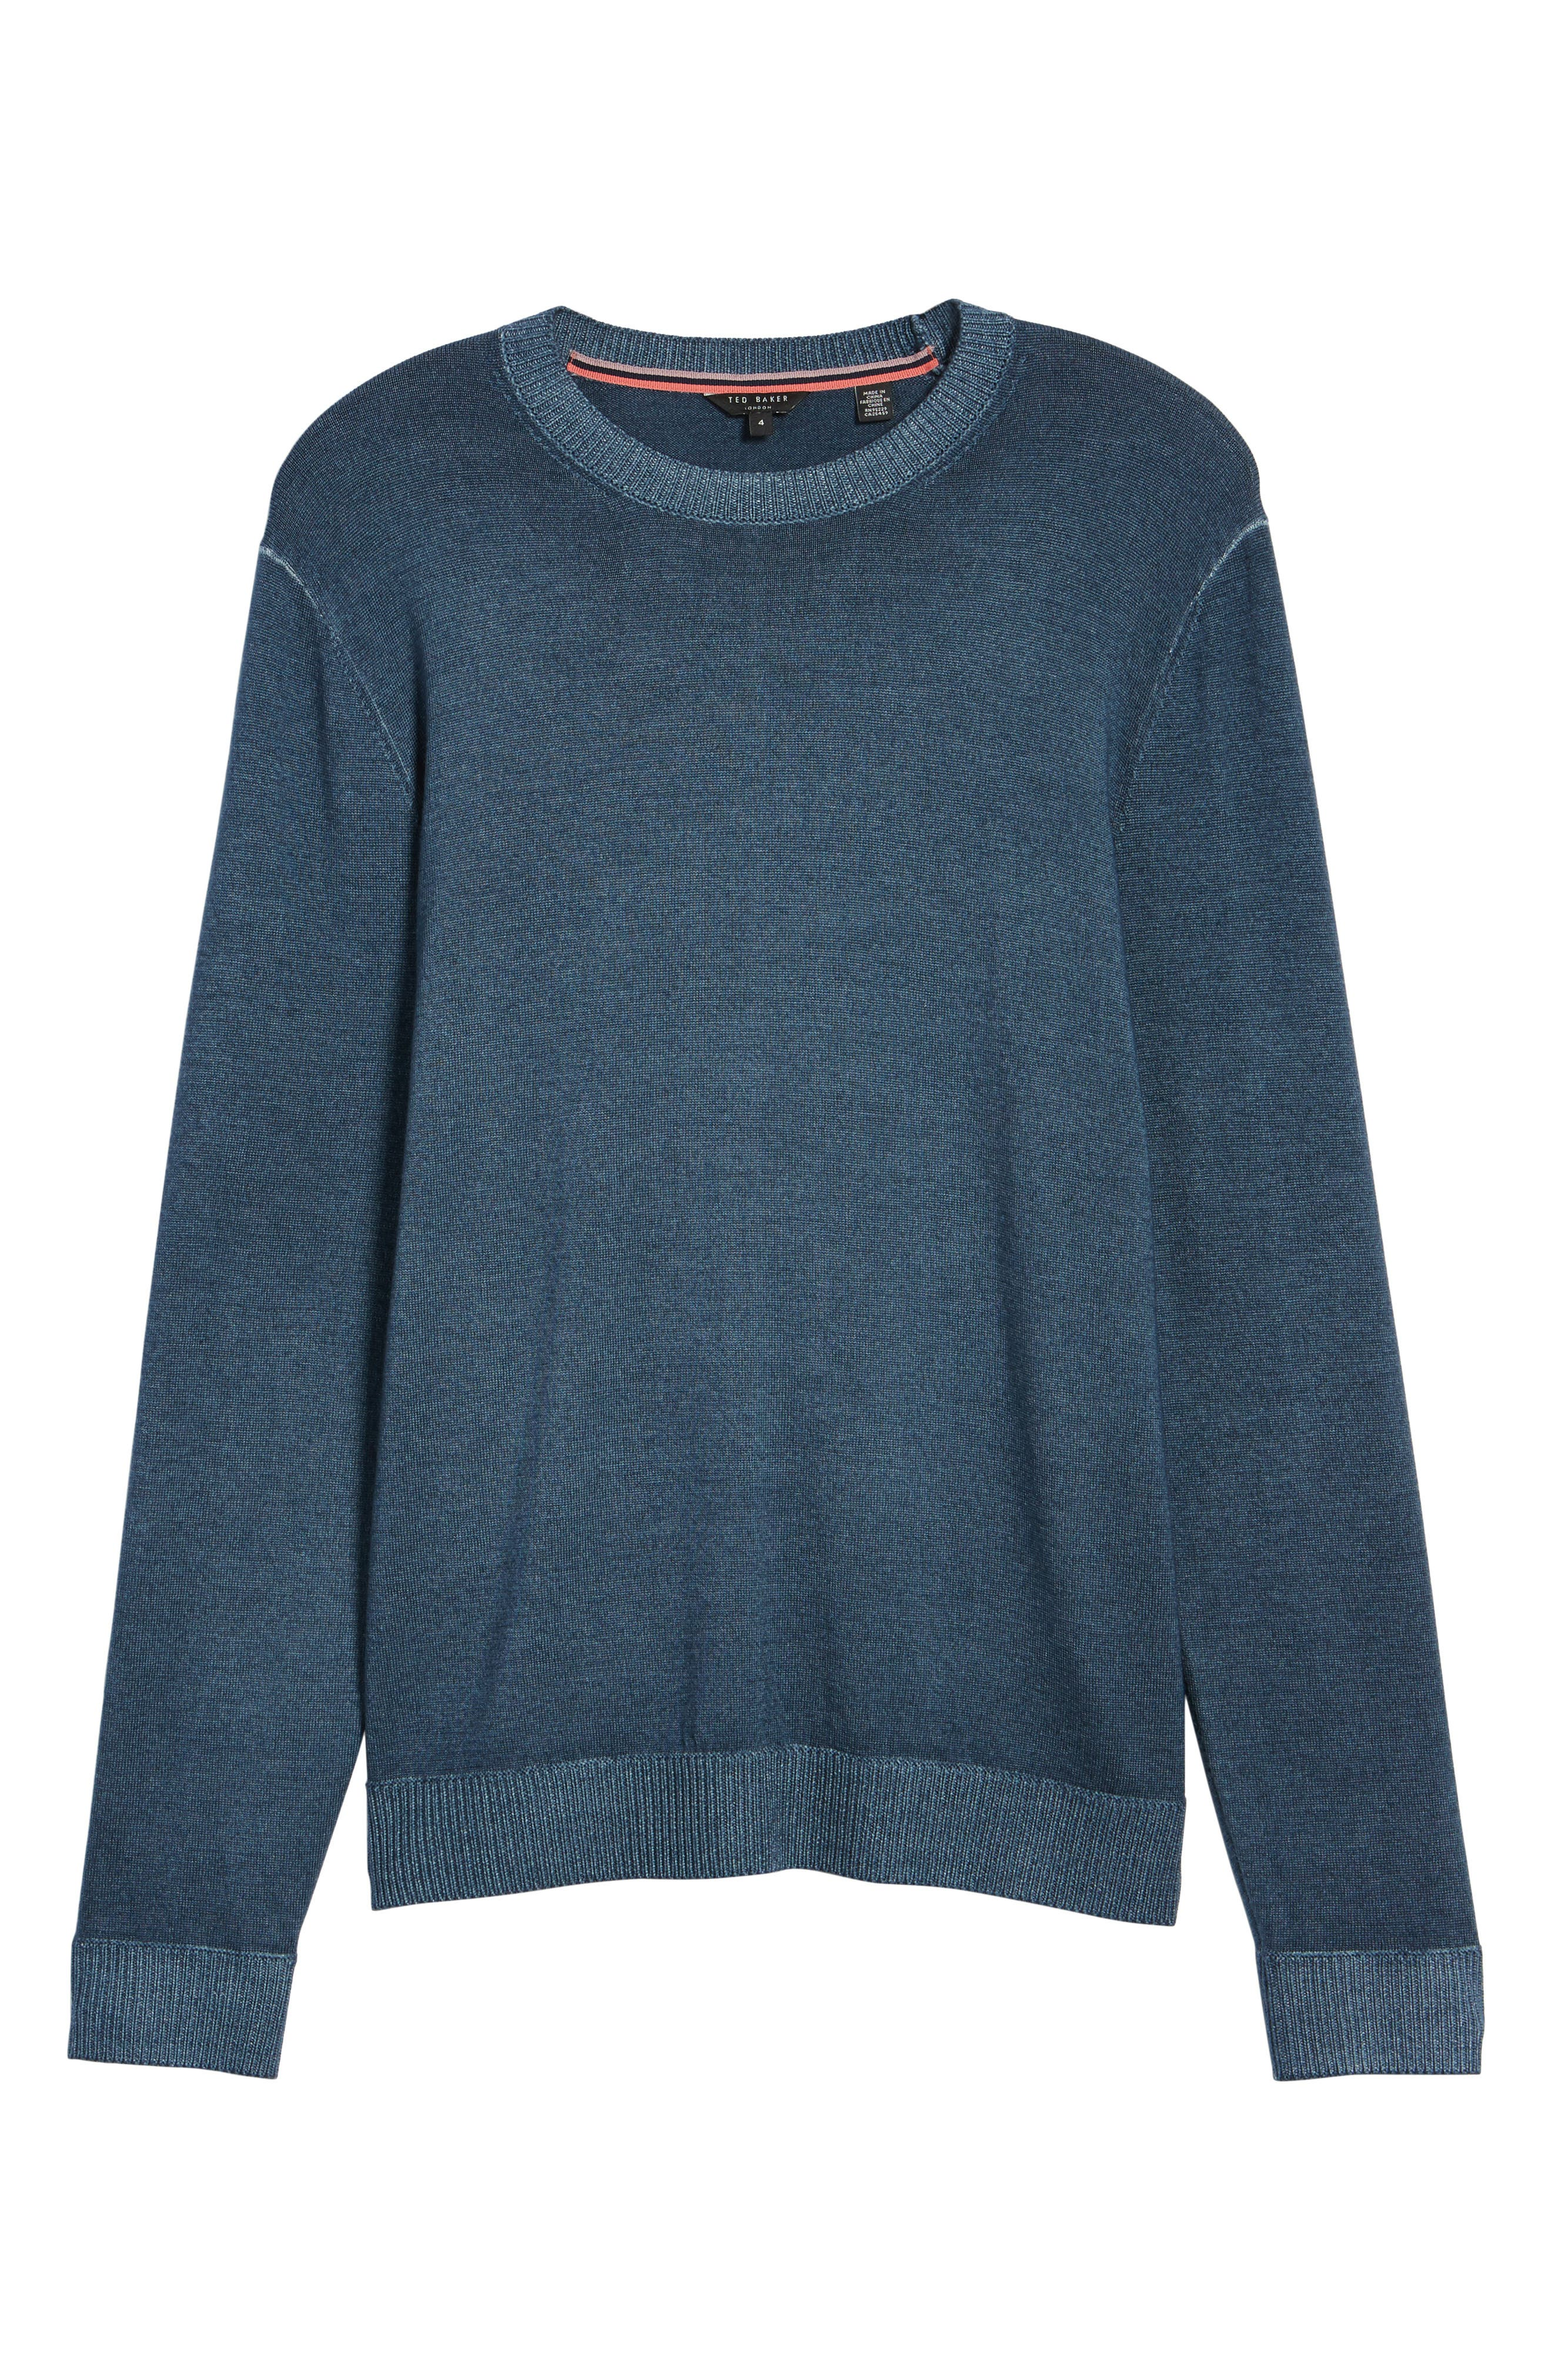 Lucky Trim Fit Wool Sweater,                             Main thumbnail 1, color,                             Mid Blue